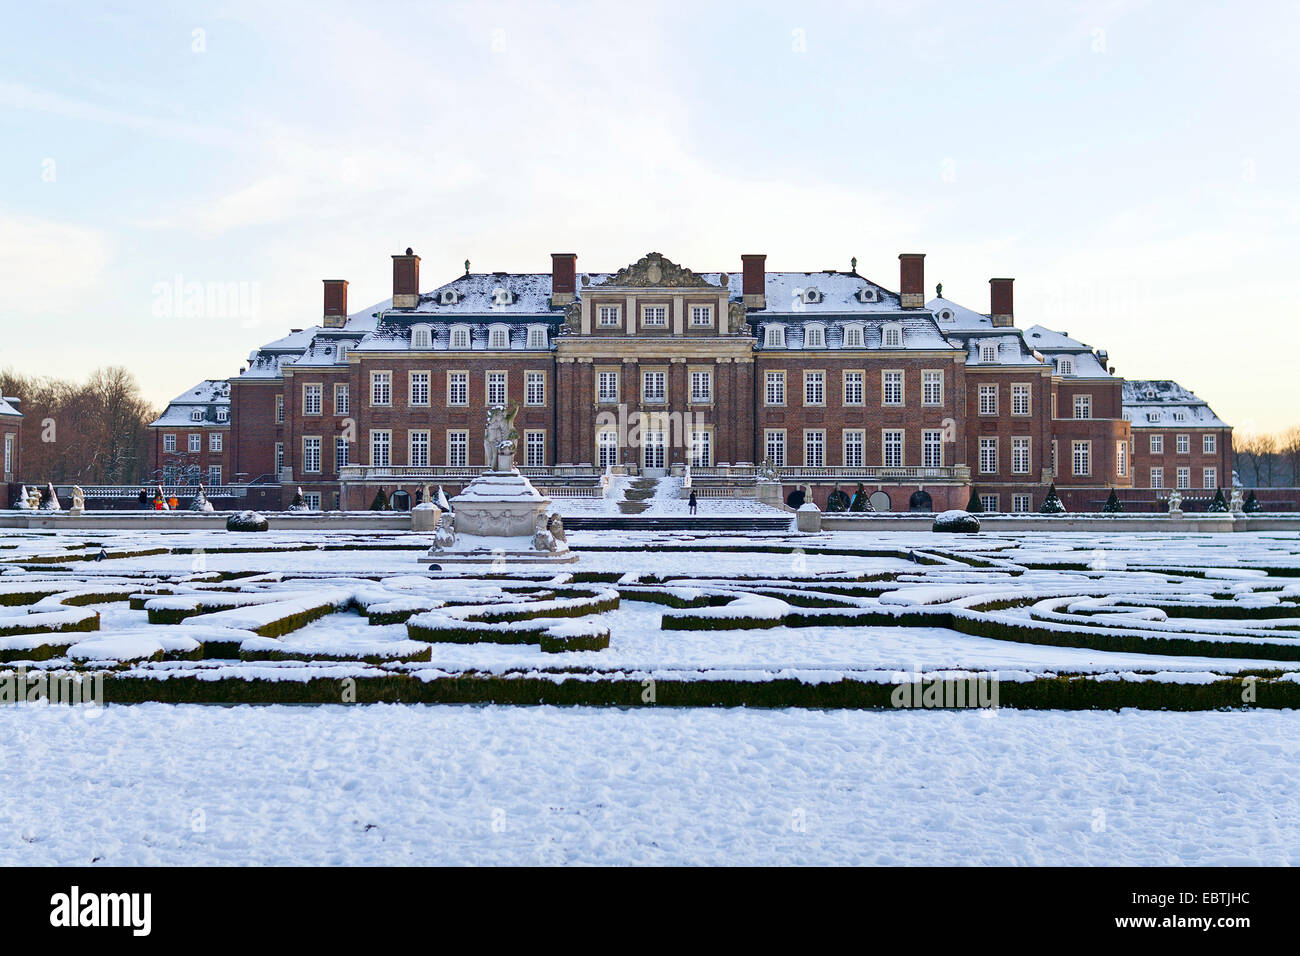 baroque moated Castle Nordkirchen in winter seen from the palace garden, Germany, North Rhine-Westphalia, Muensterland, - Stock Image